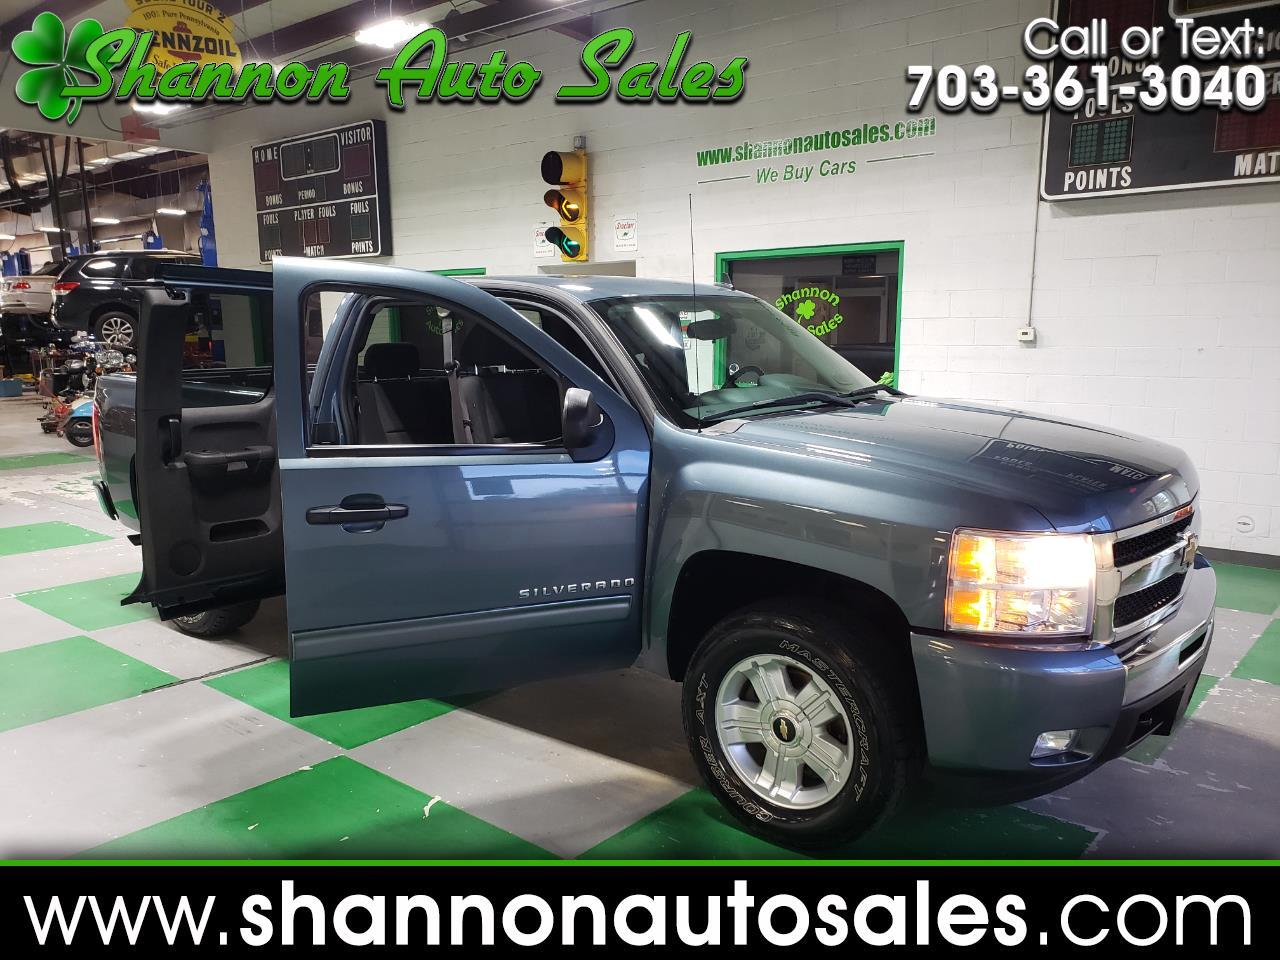 2010 Chevrolet Silverado 1500 LT1 Ext. Cab Short Box 4WD